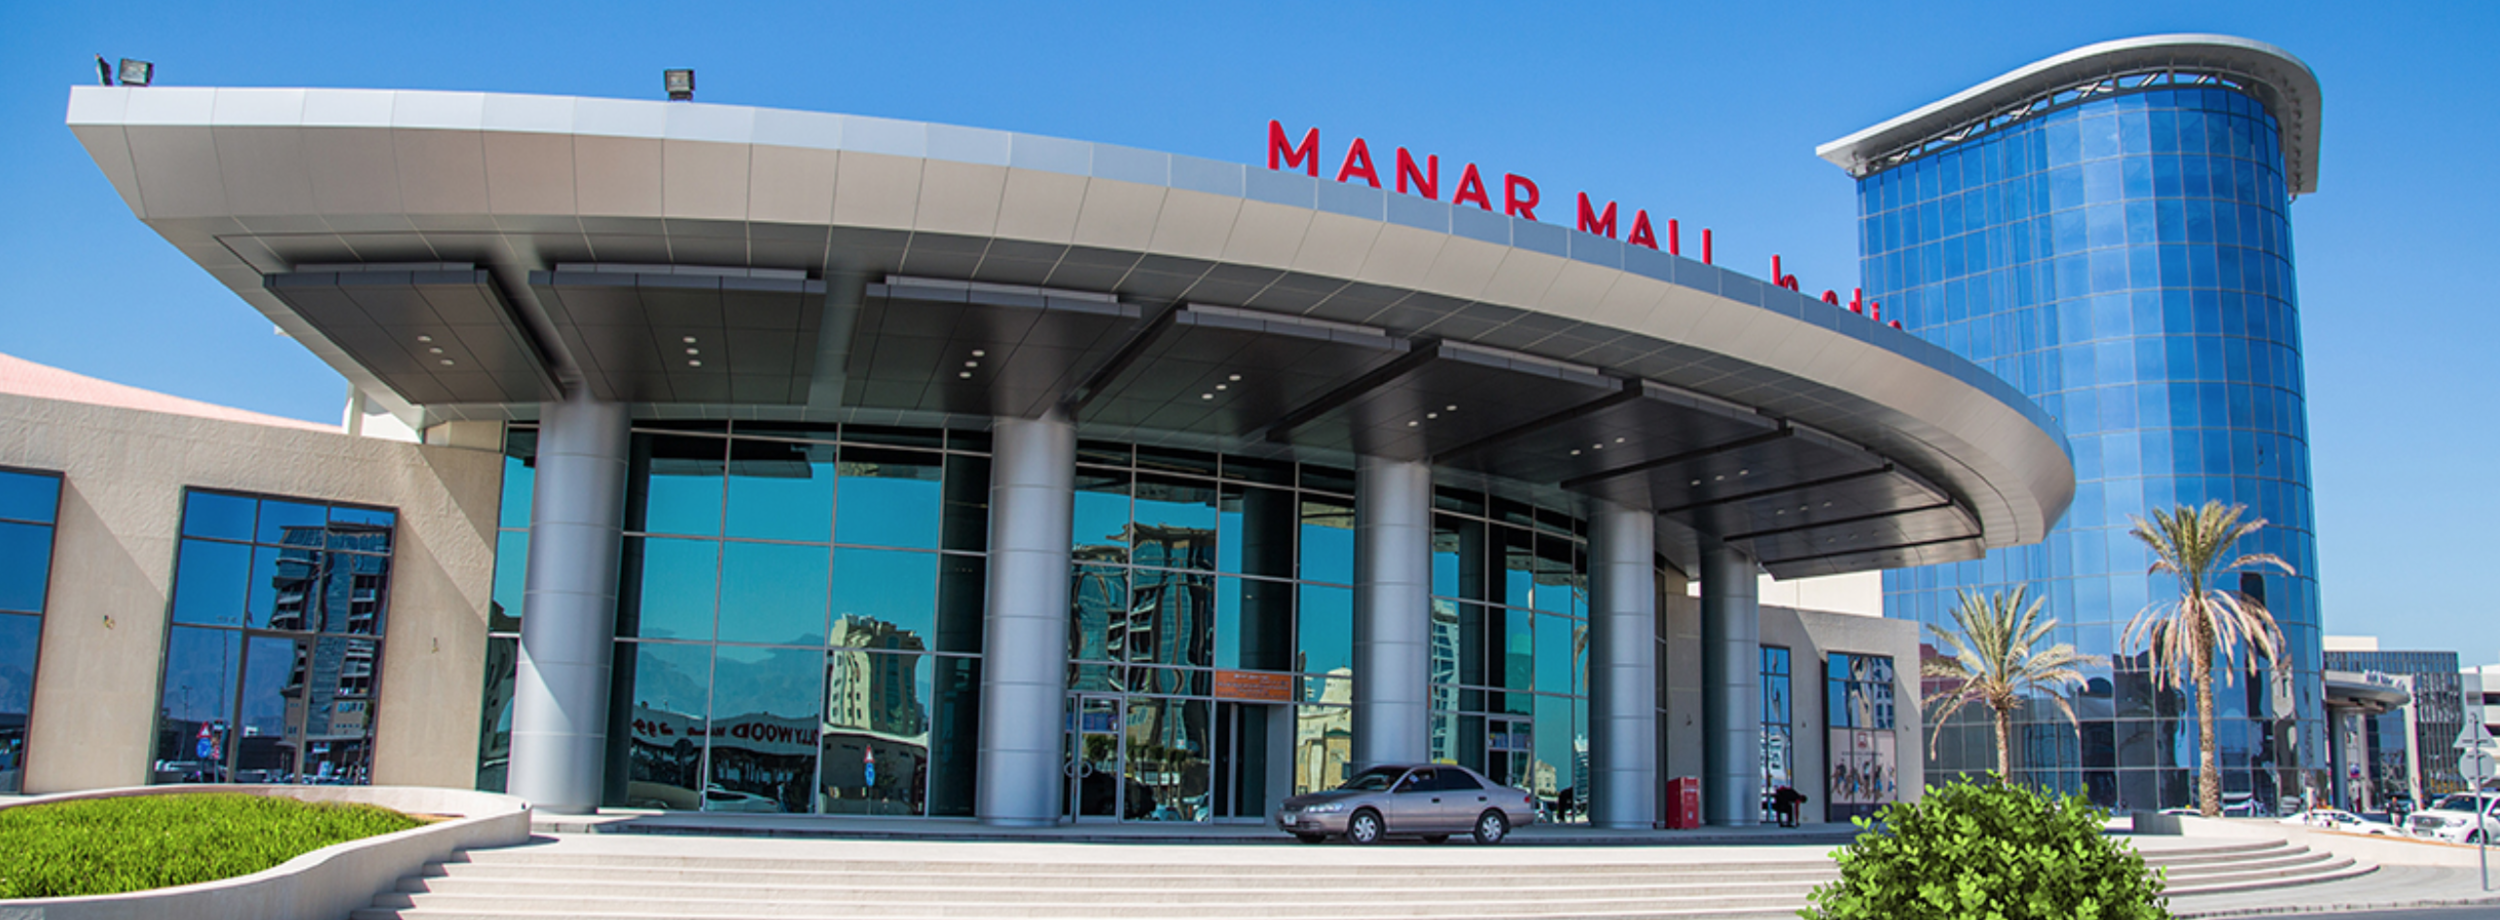 Manar Mall New Entrance By Cadiz.png